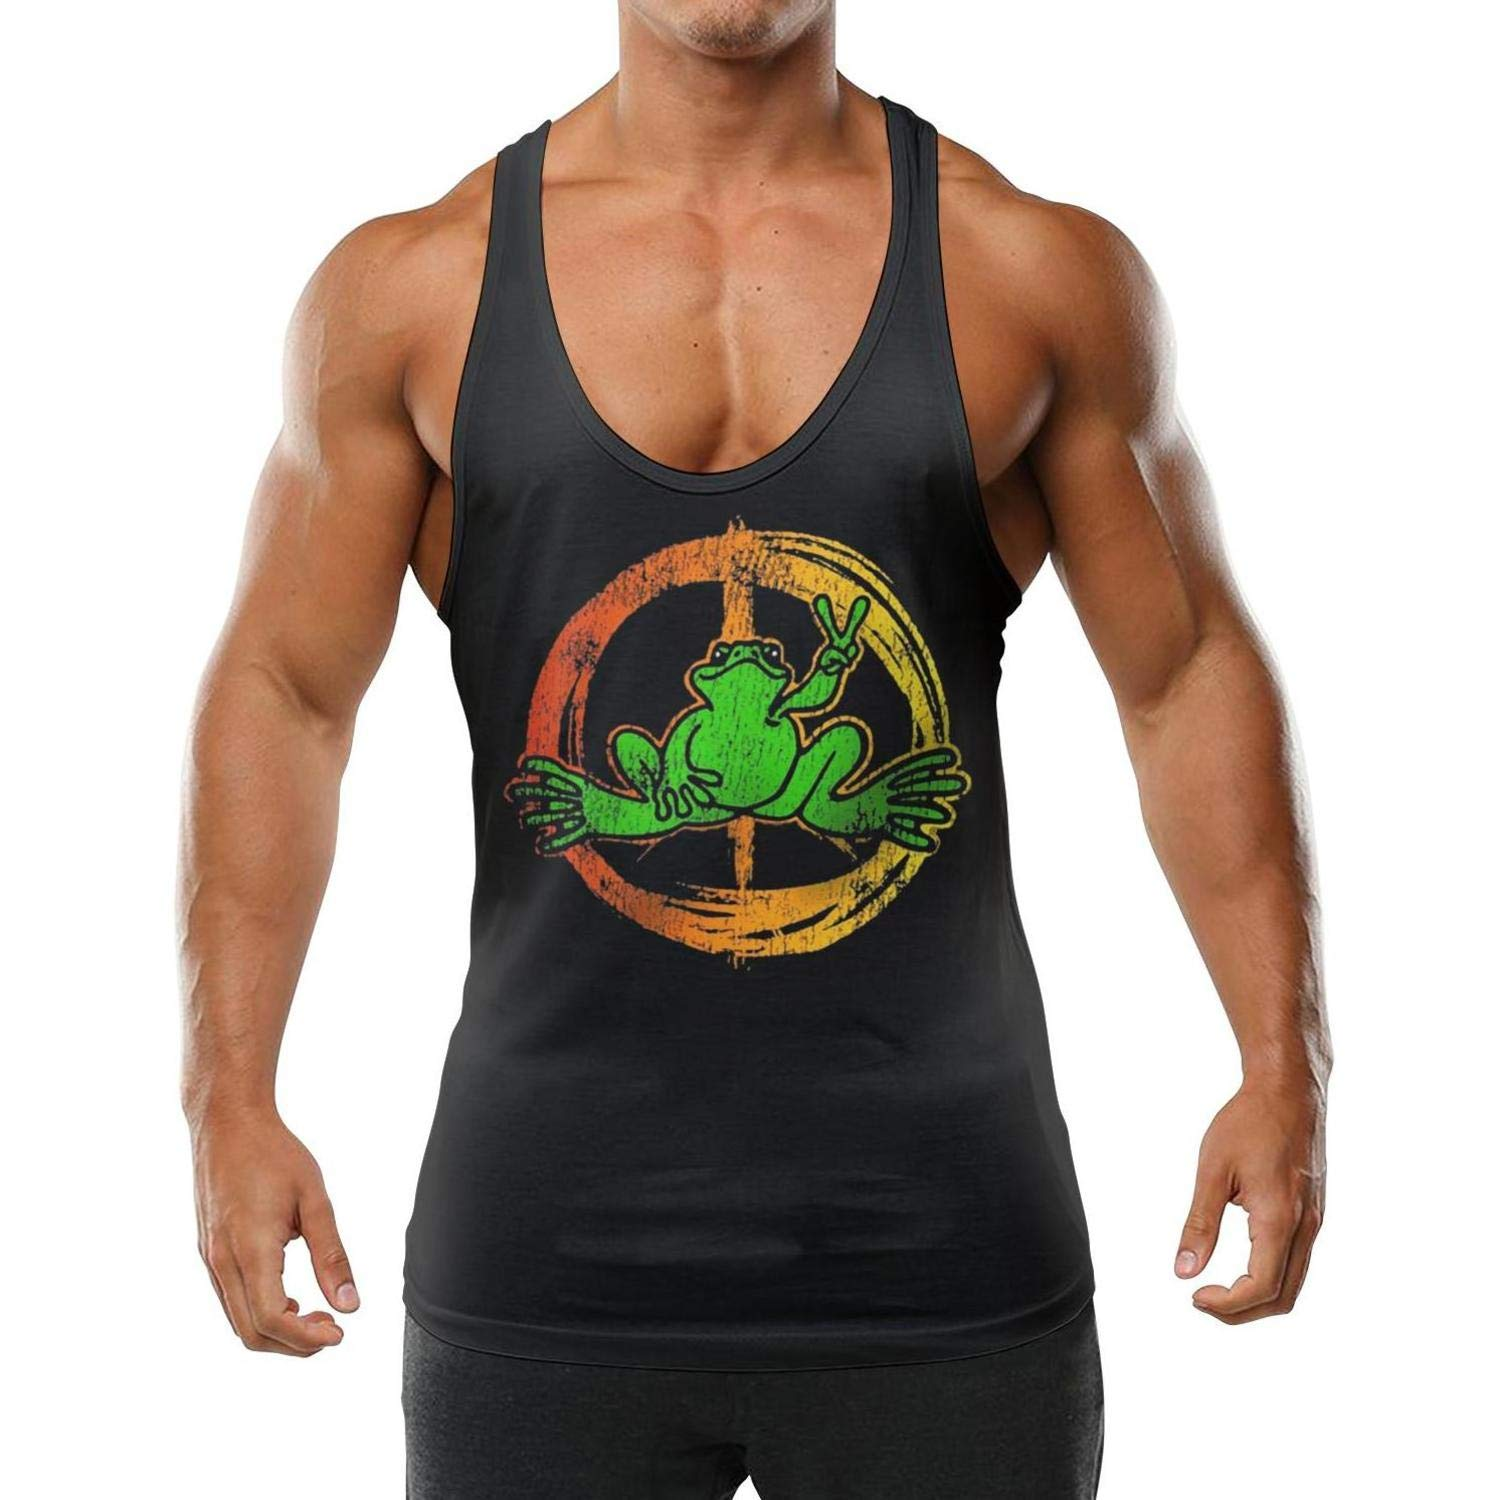 GTGTH Mens Sleeveless Tank Tops Peace Frogs Logo Vest Performance Stringer Waistcoats